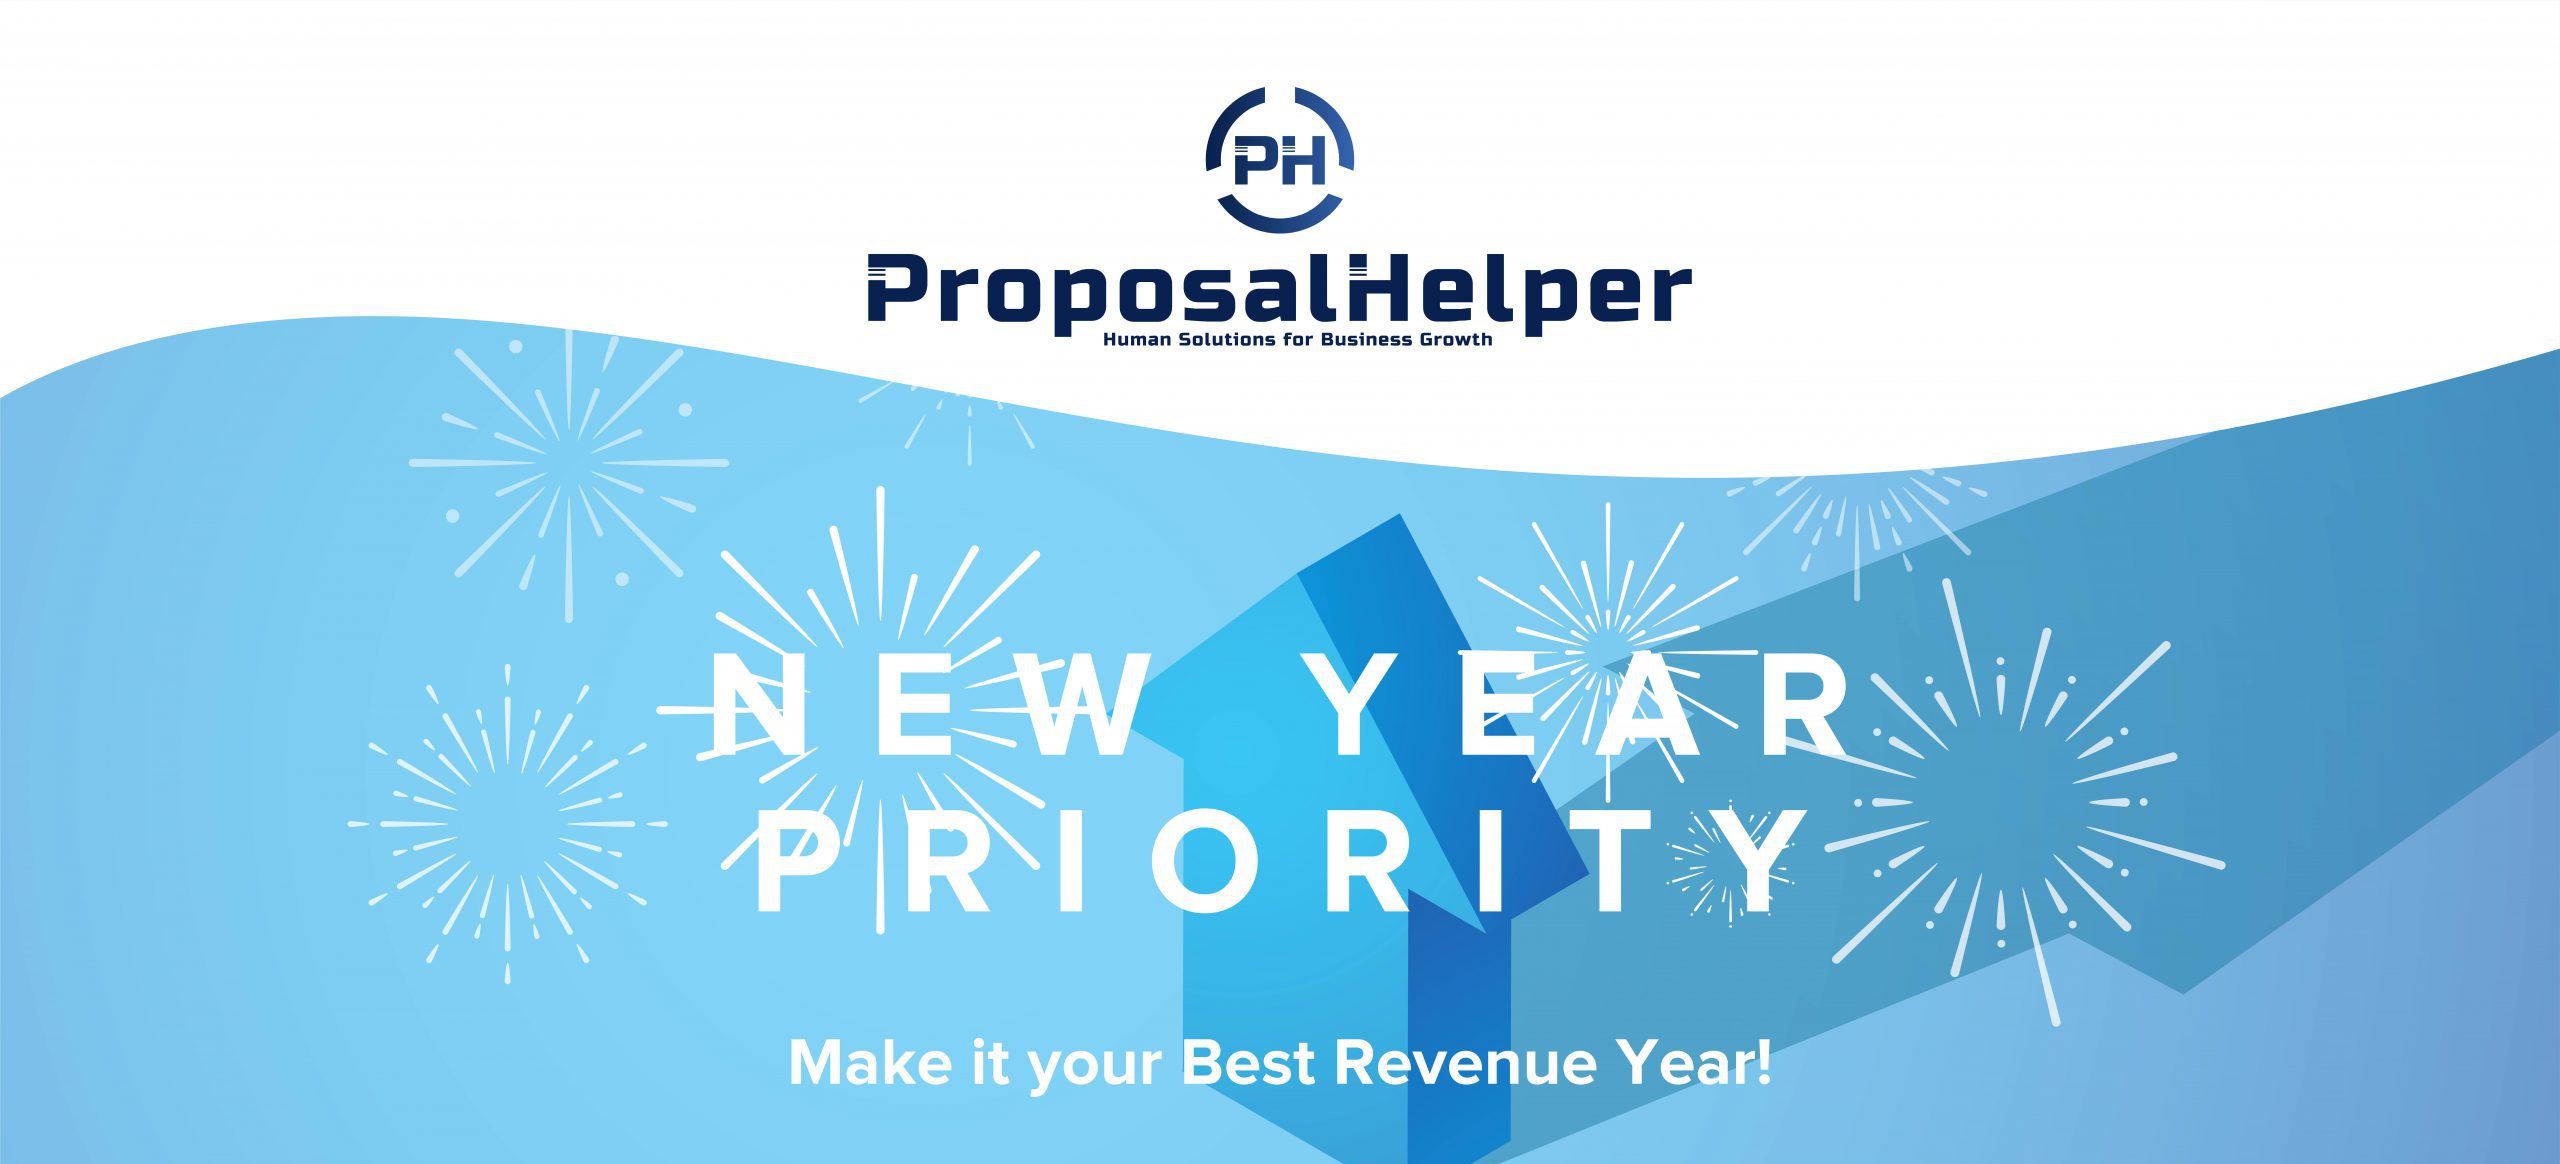 New Year Priority – Make it Your Best Revenue Year!